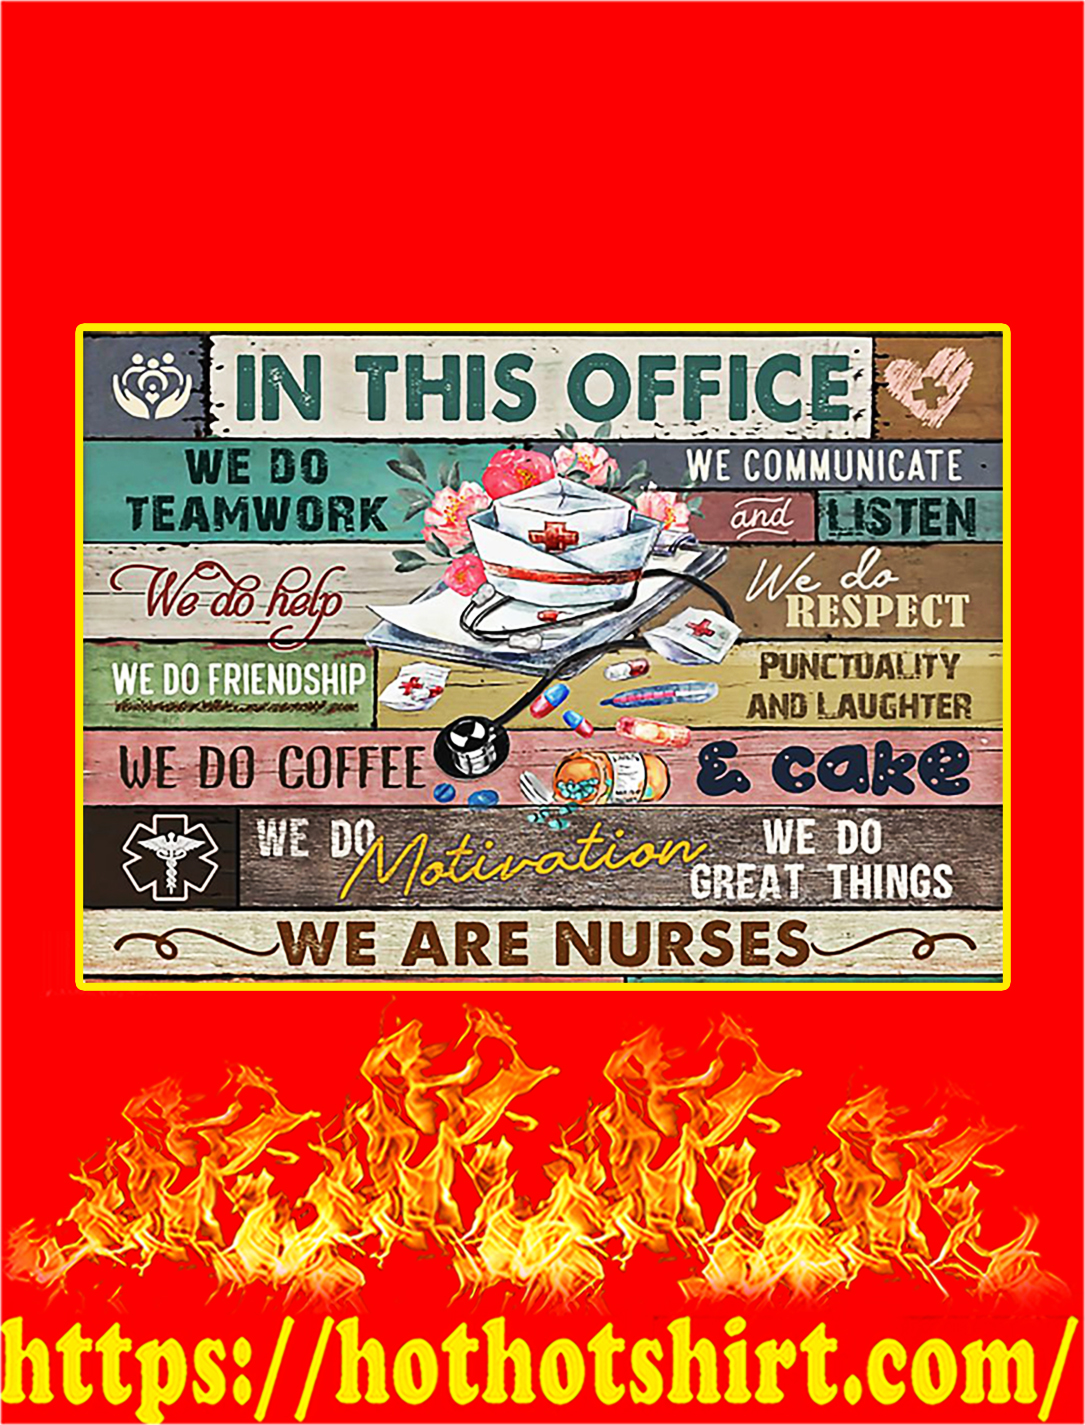 In This Office We Are Nurses Poster - A2